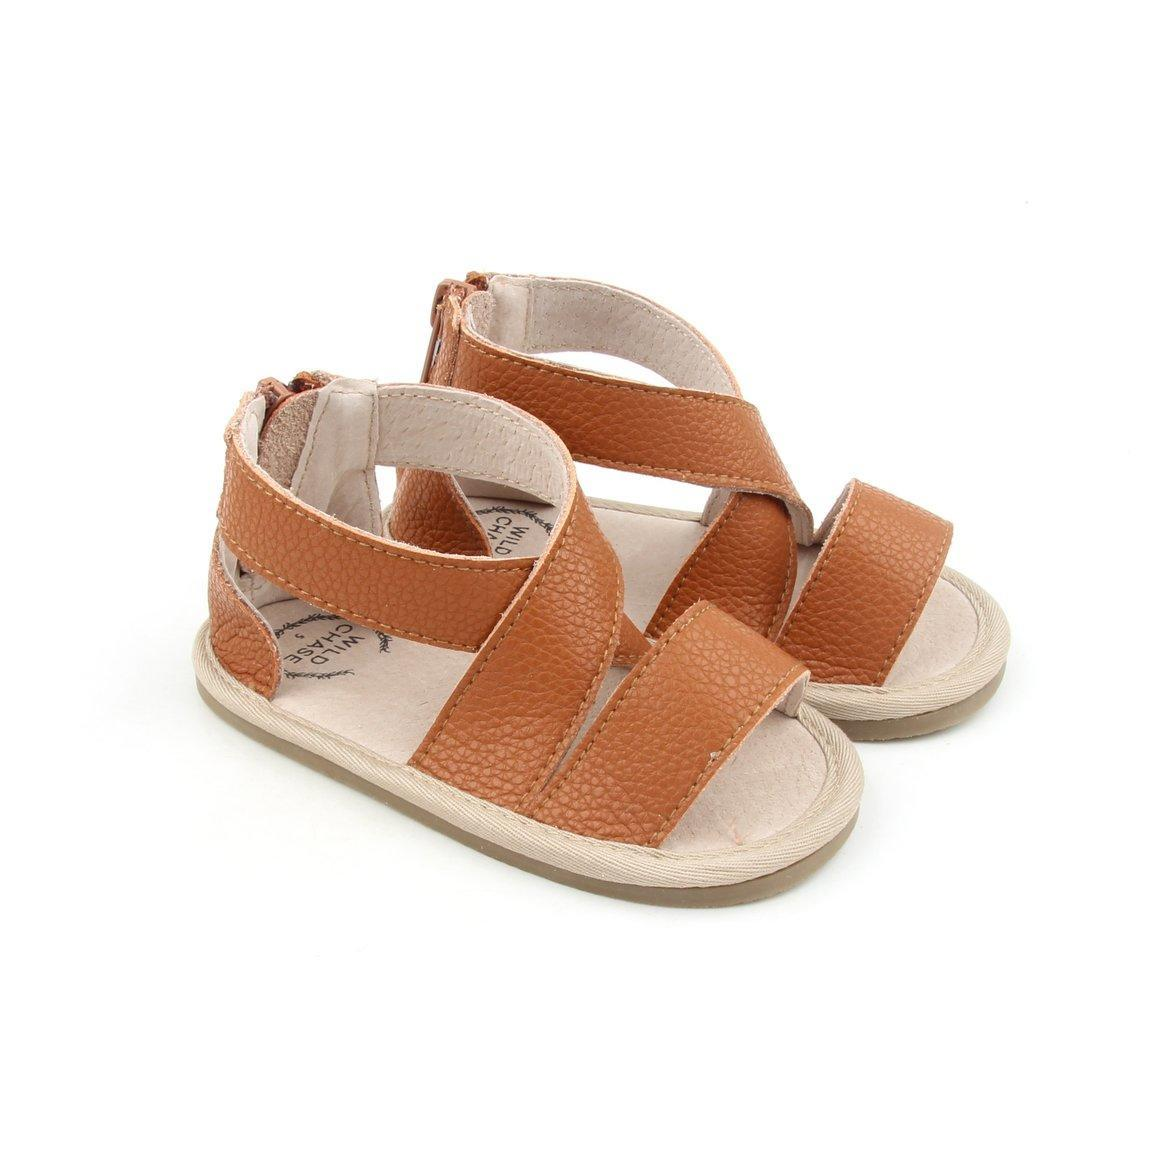 Luxe Leather Sandal Collection - Tan | Trada Marketplace